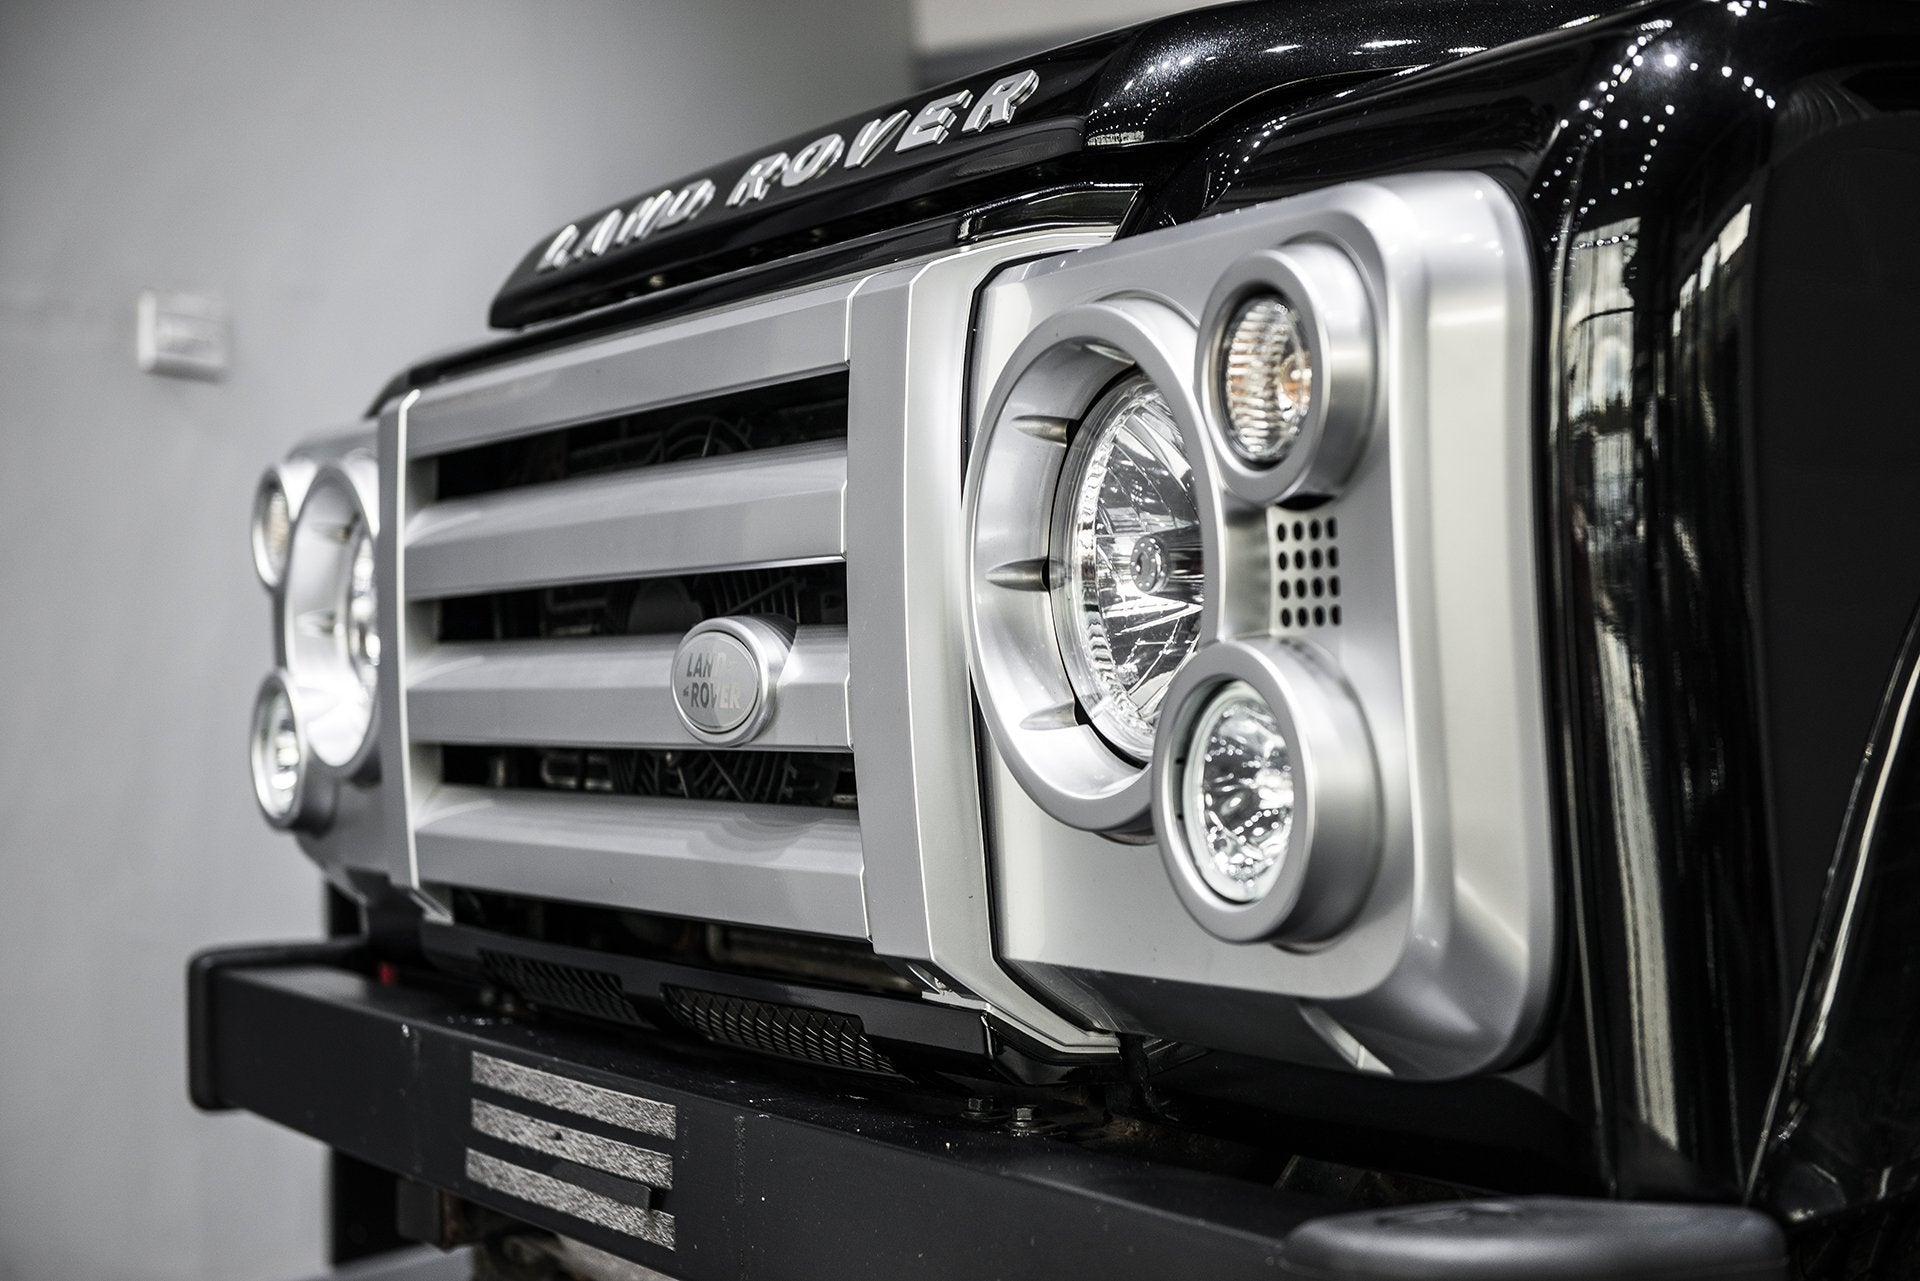 Land Rover Defender 90 (1991-2016) Retro Front Grille With Headlight Surrounds by Chelsea Truck Company - Image 1163